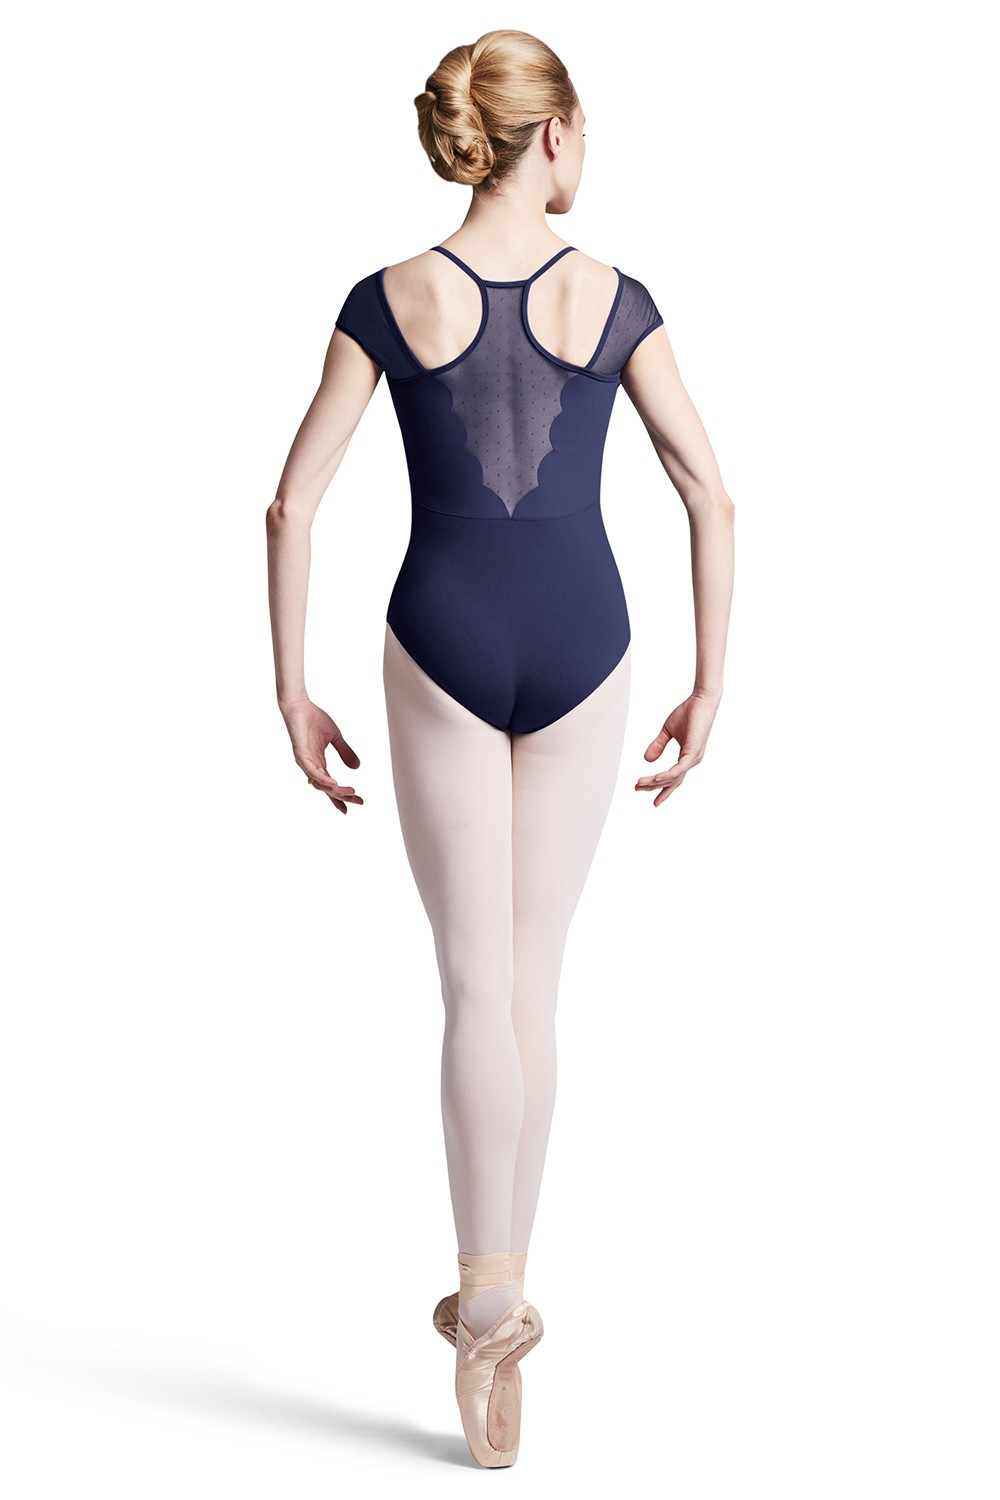 Fedlem Children's Dance Leotards